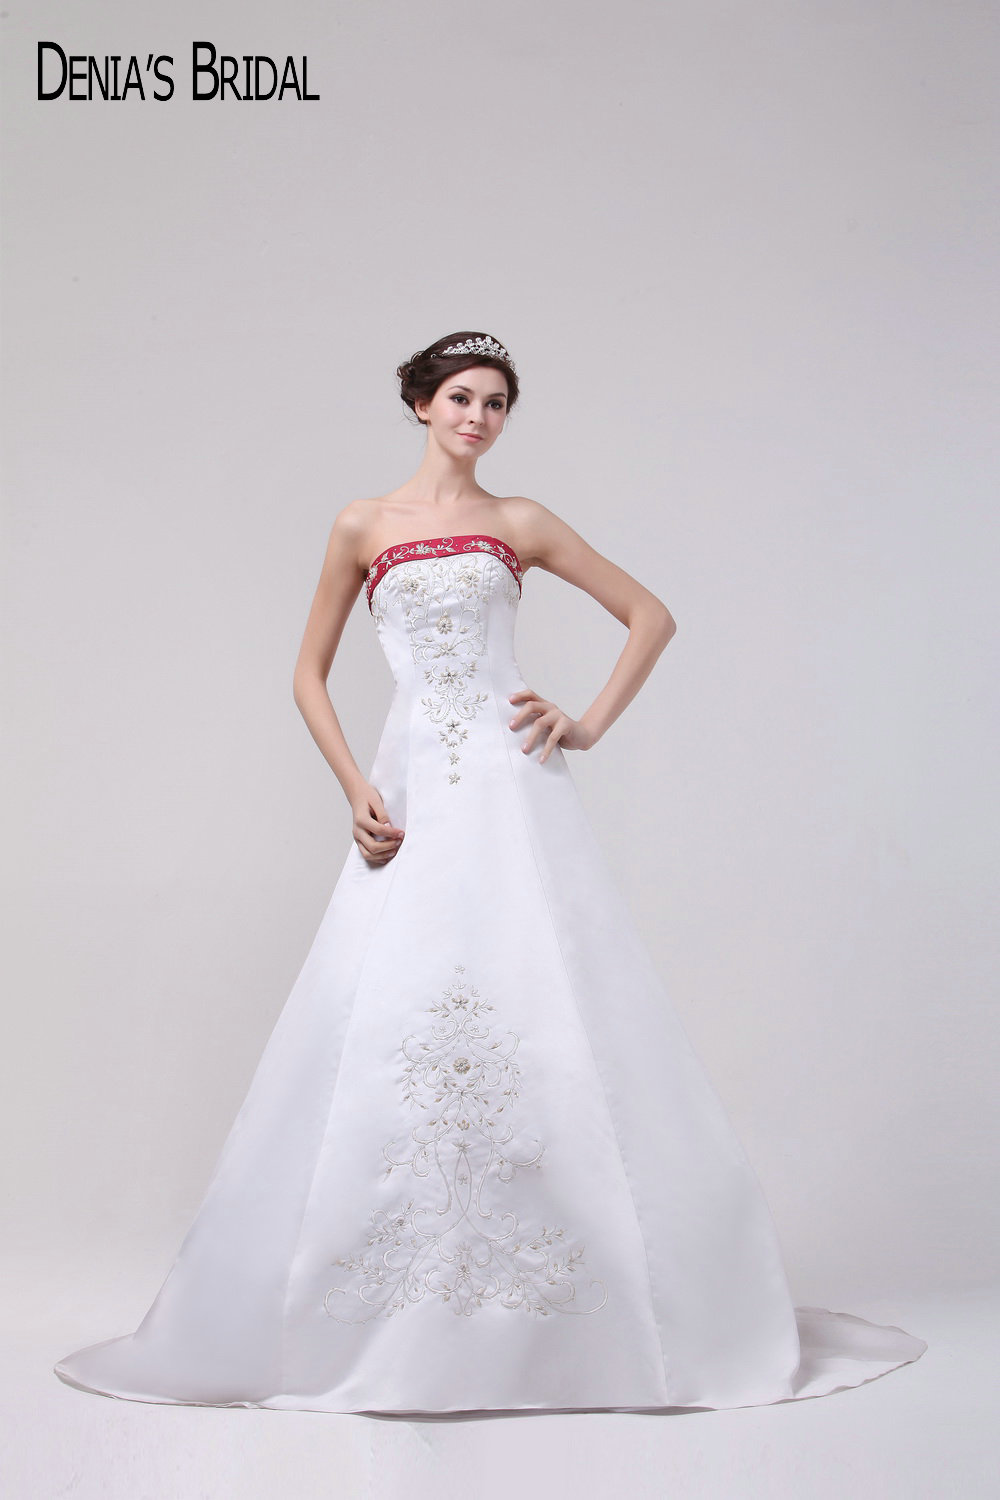 Compare Prices on Beautiful Bridal Gowns- Online Shopping/Buy Low ...